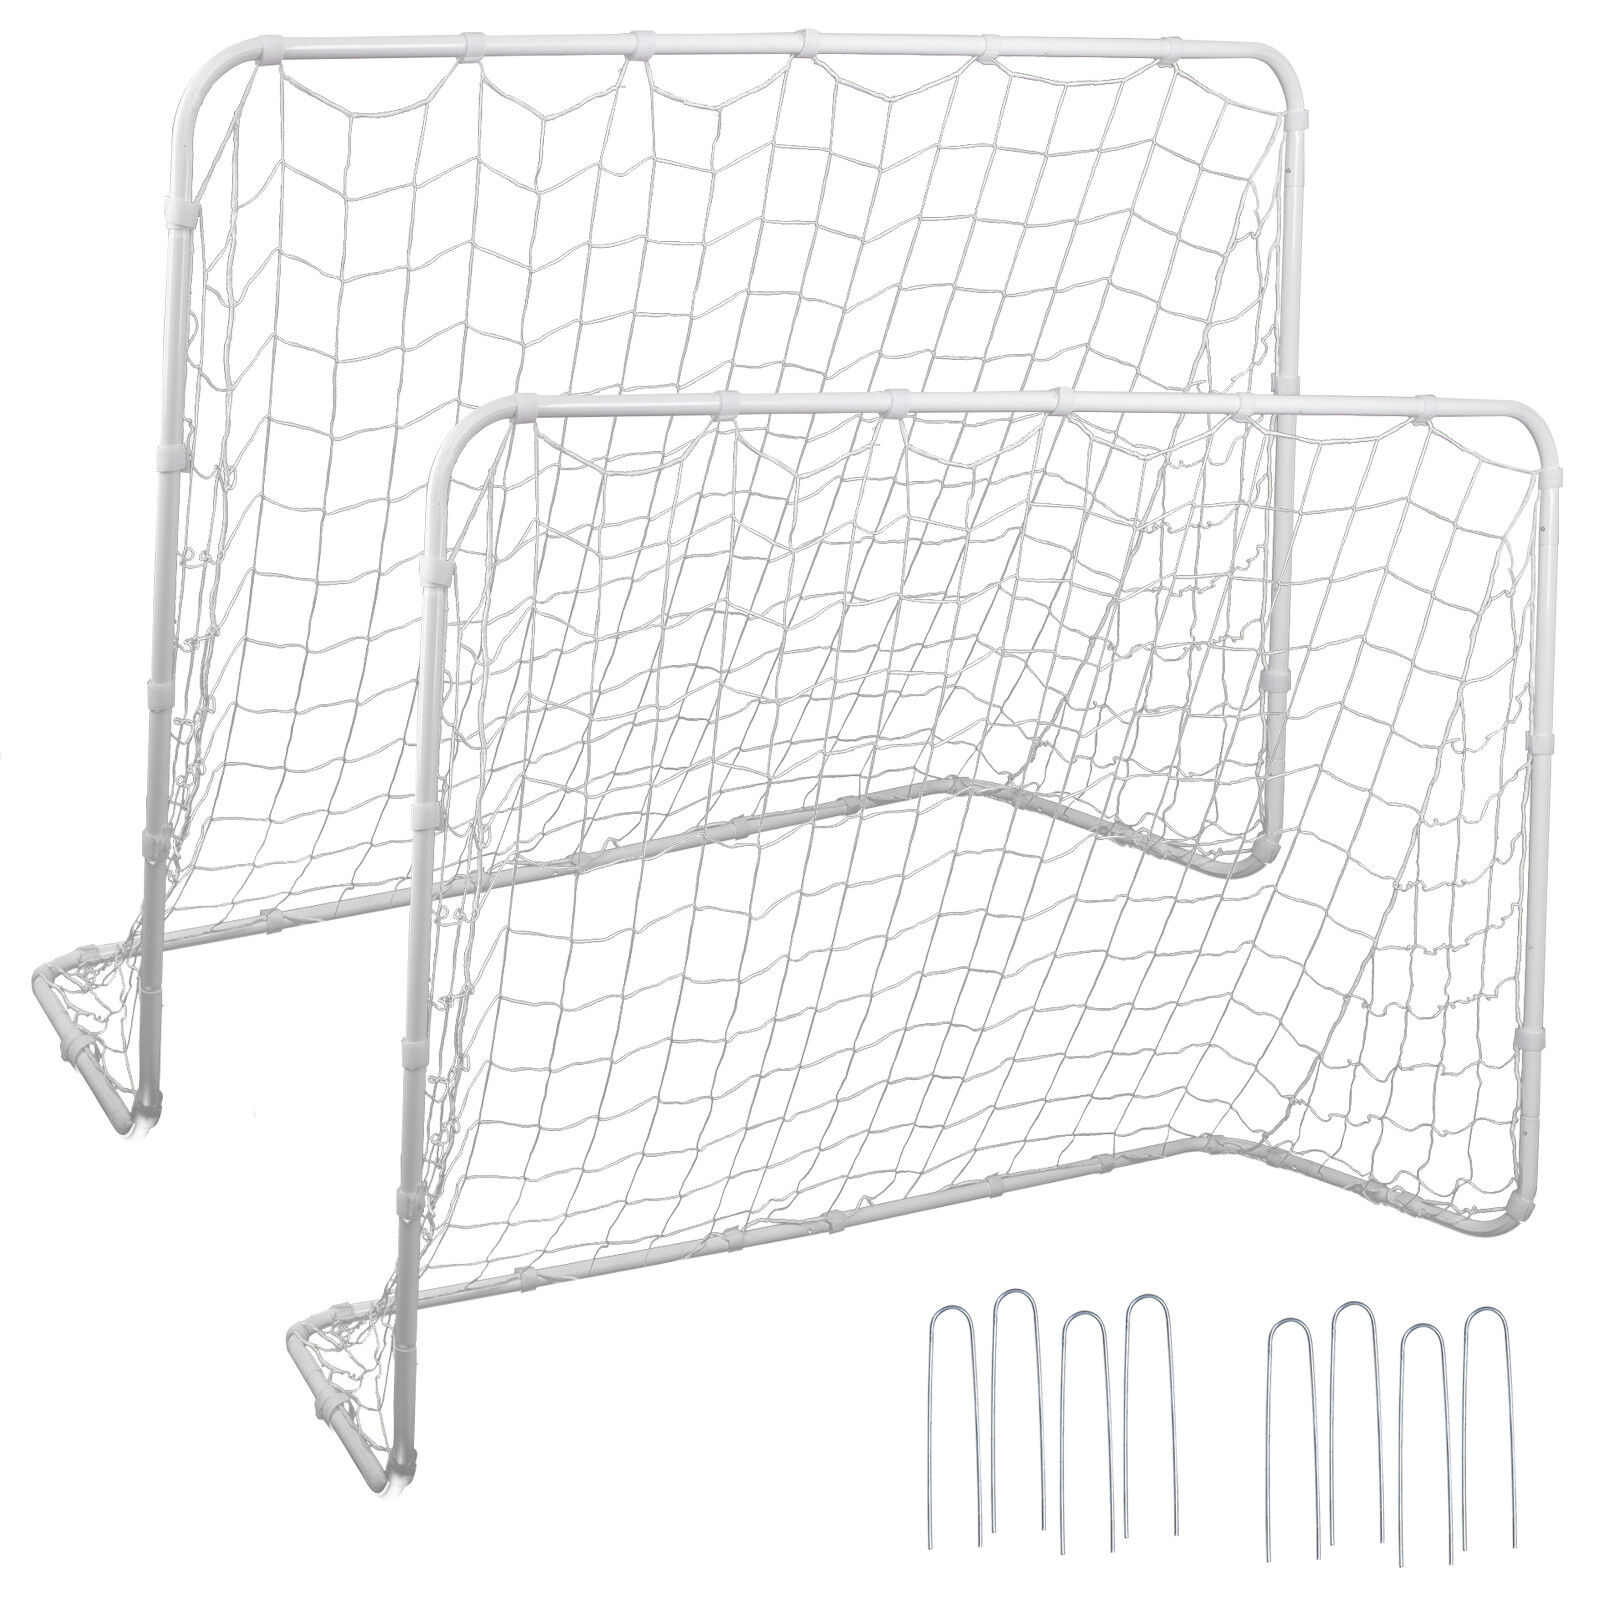 6×4 FT Portable Youth Size Steel Frame 2 Pack Soccer Goal Football w/Durable Net Goals & Nets